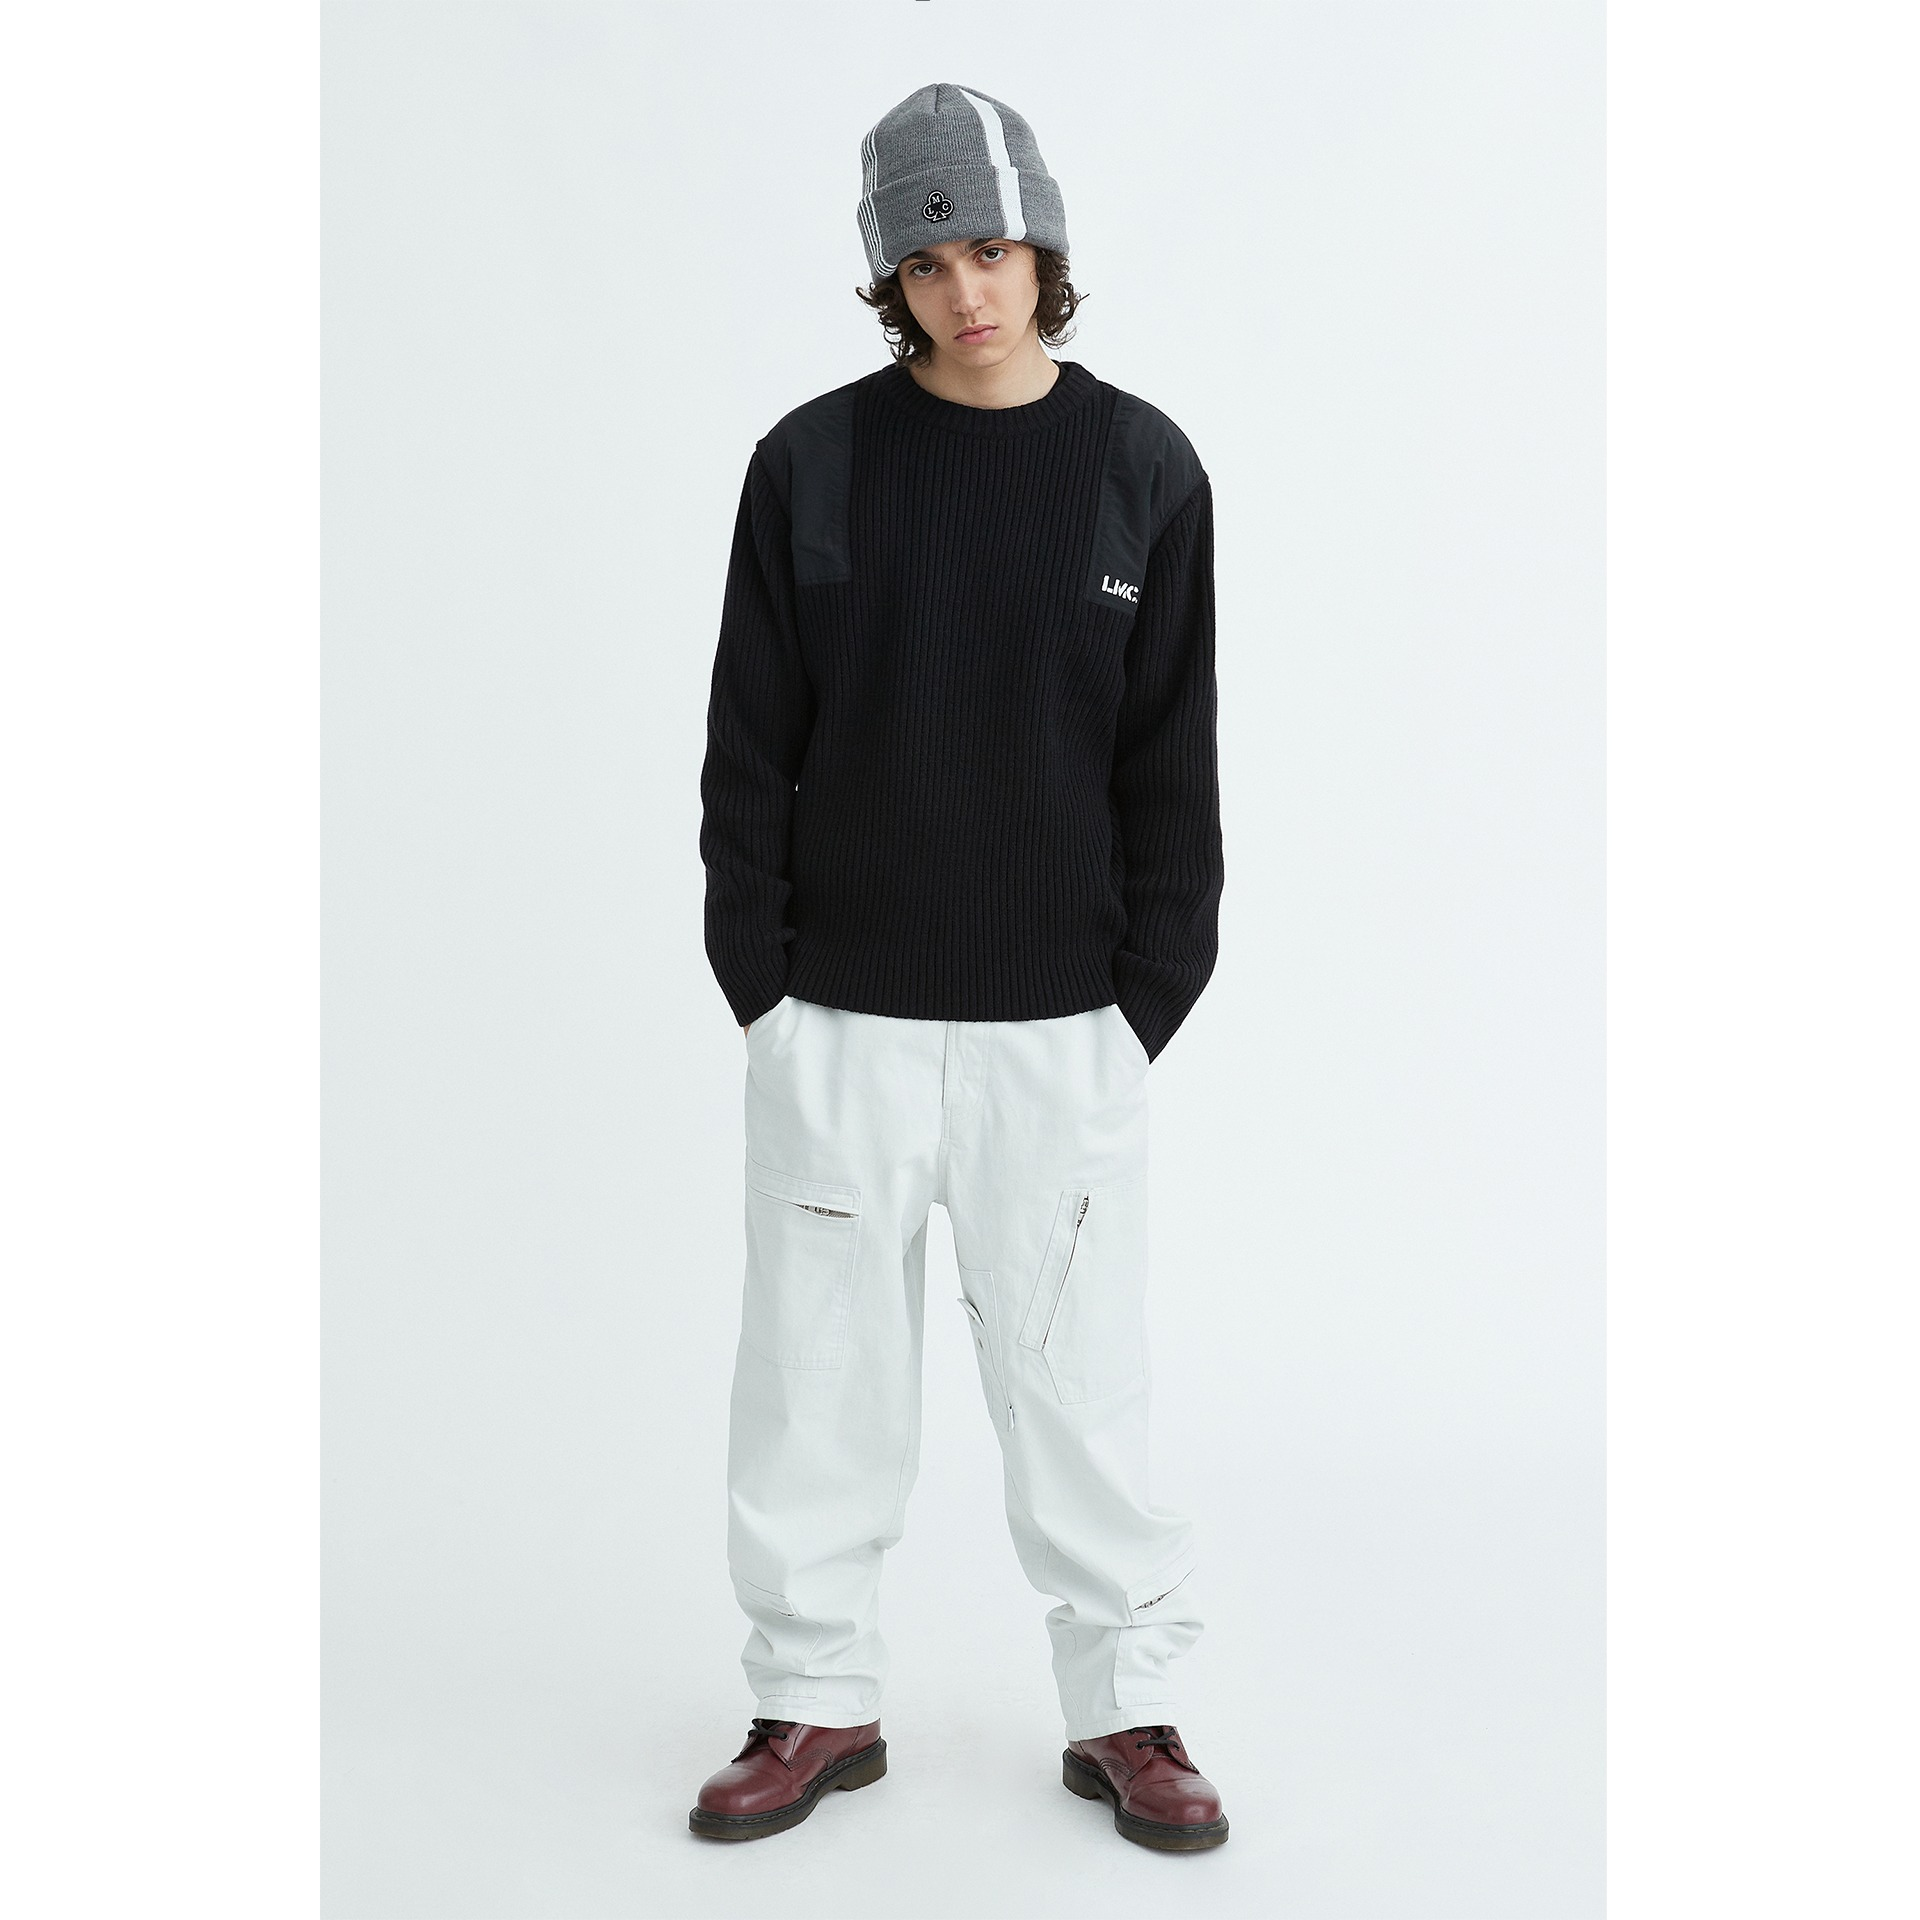 LMC COMMANDER KNIT SWEATER black